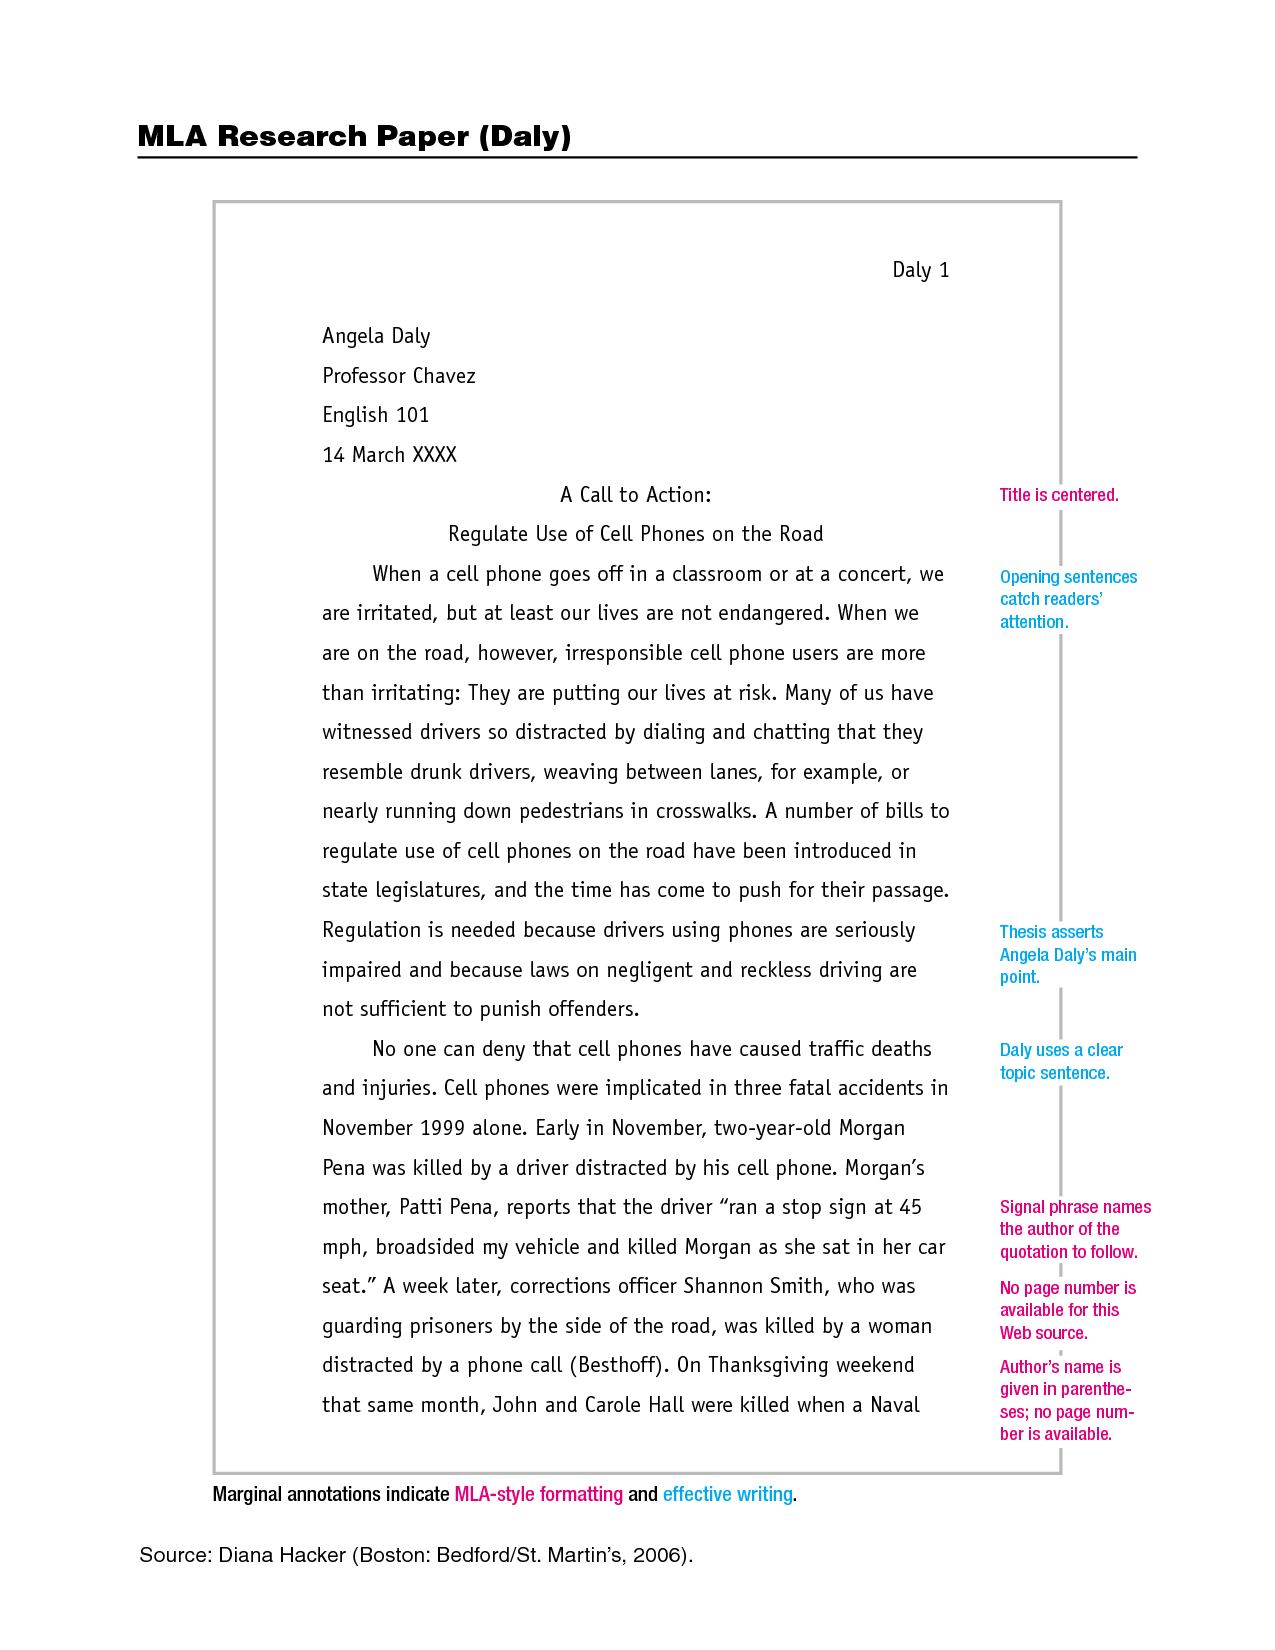 007 Brilliant Ideas Of What Is Mla Format For An Essay Resume Cv Cover Letter Fabulous Title Page Writing In Amazing Steps To How Write Example Full